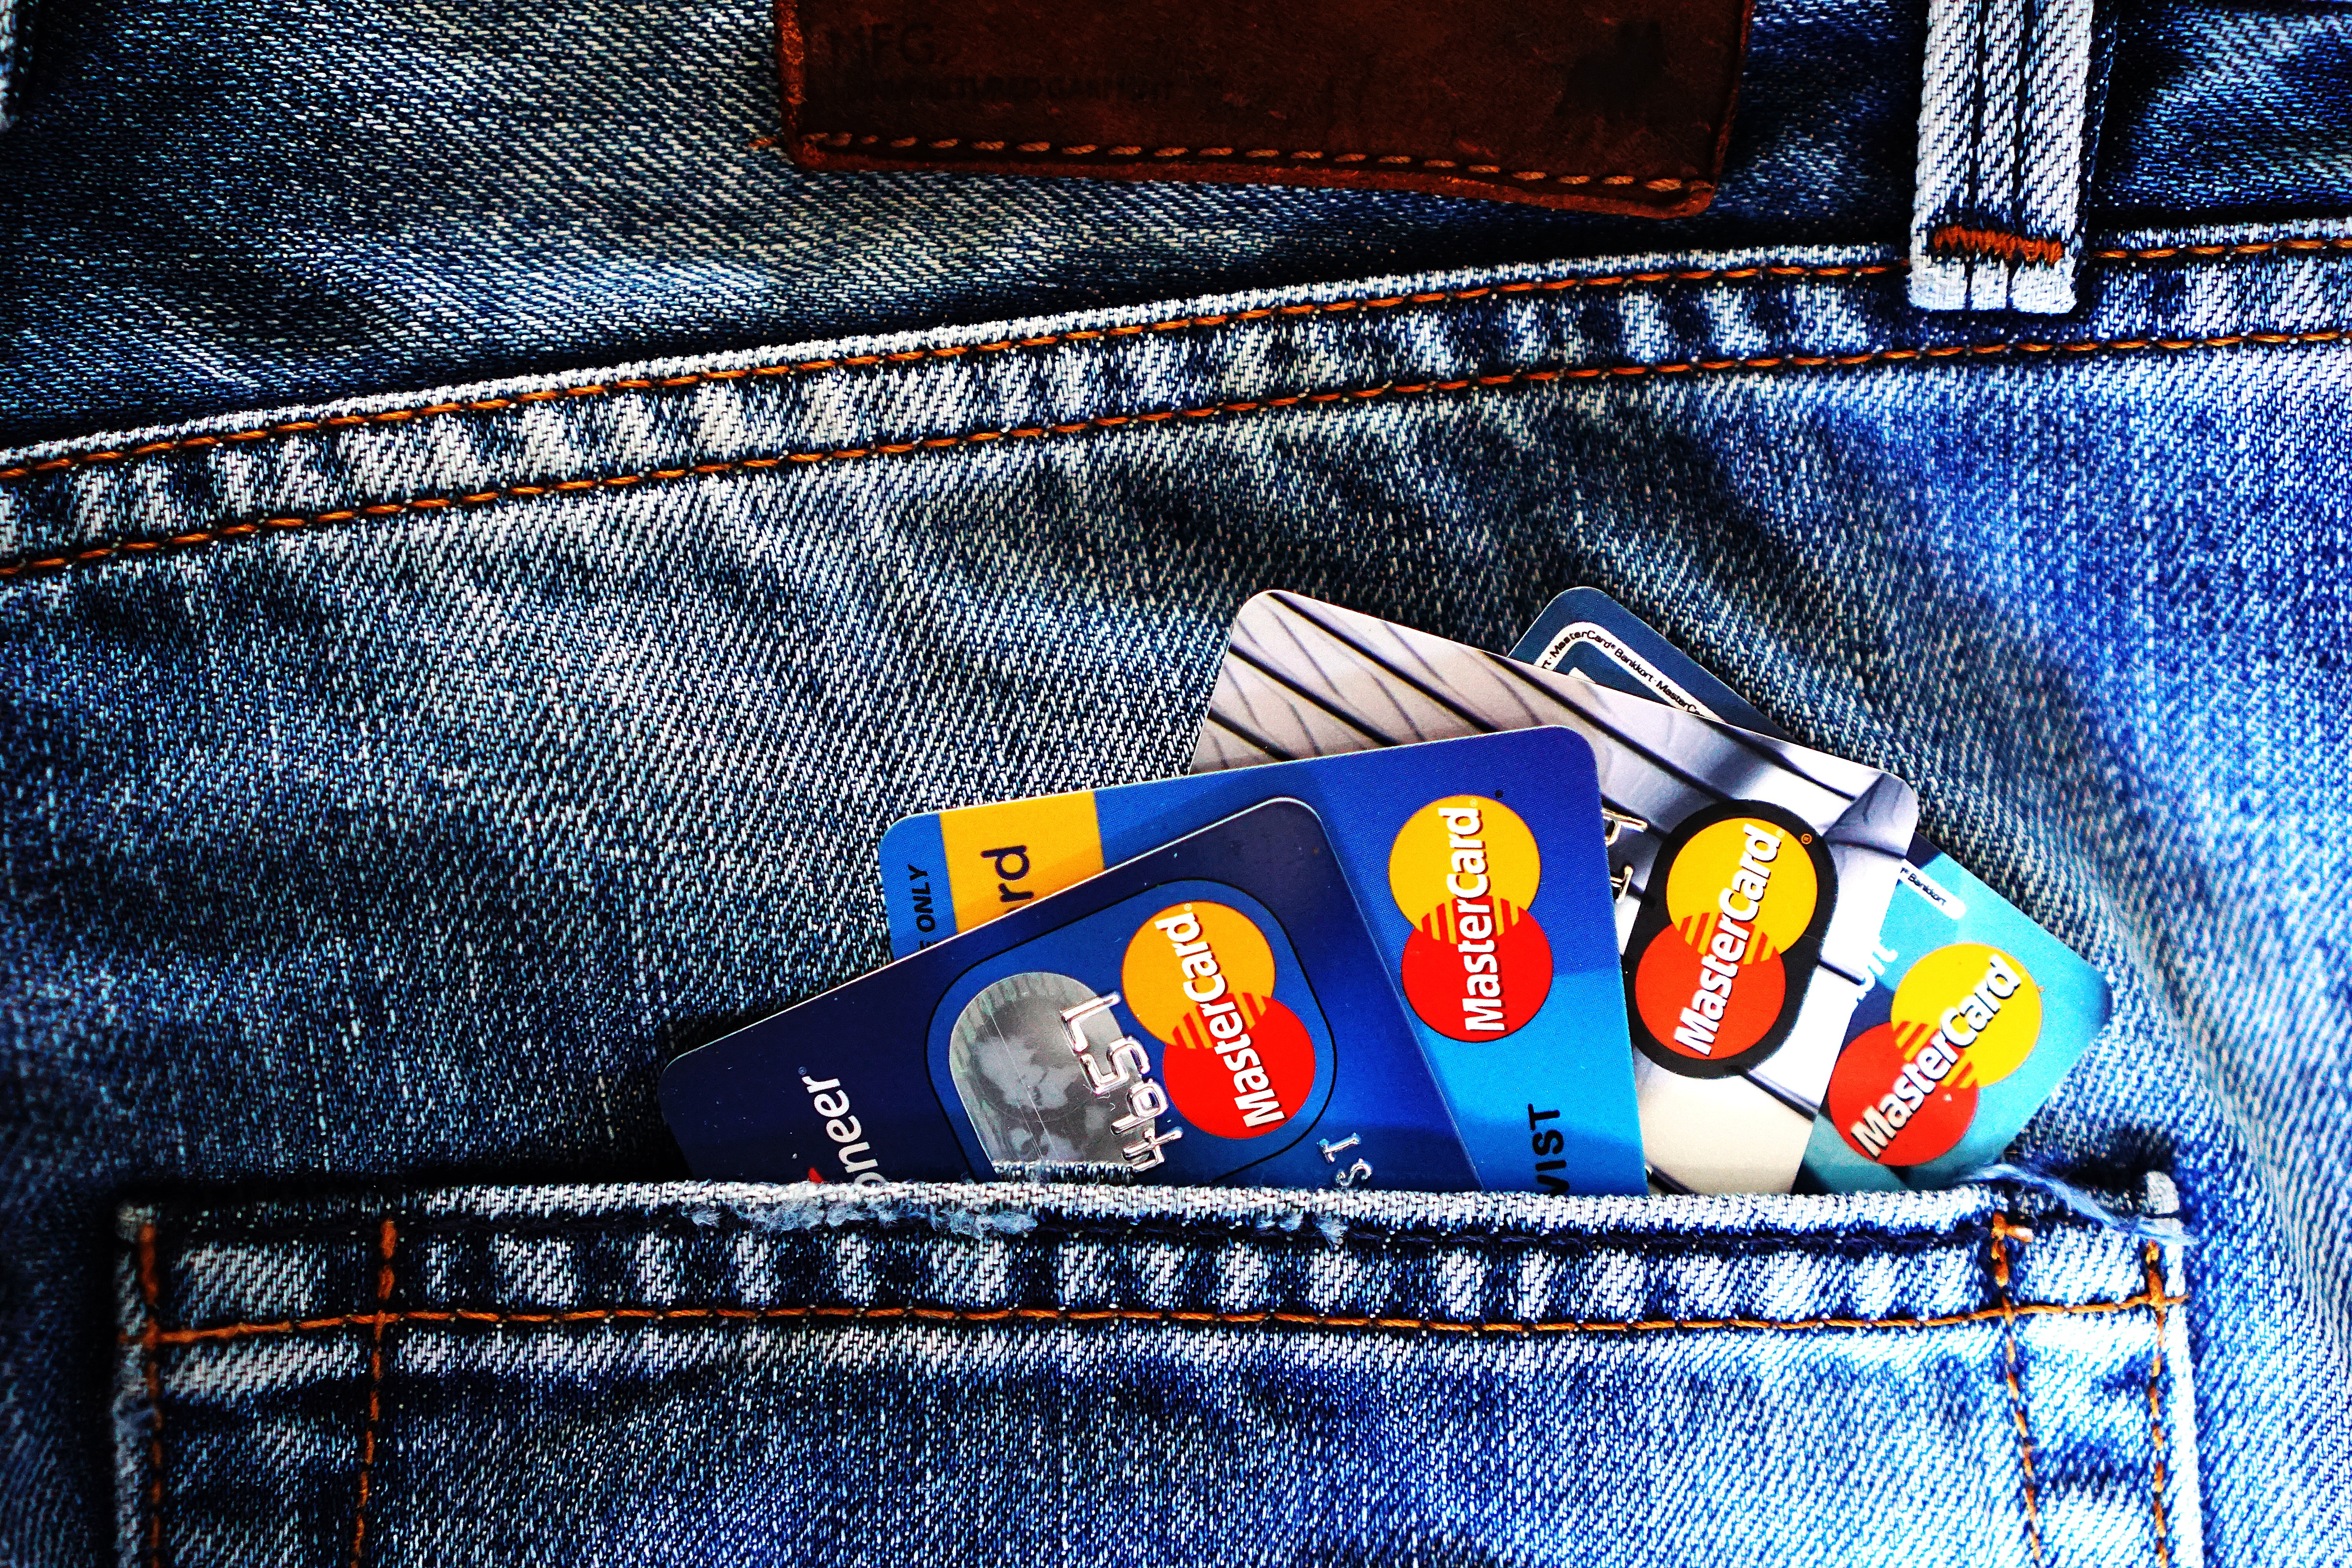 How to choose a credit card in Australia wisely - NepaliPage